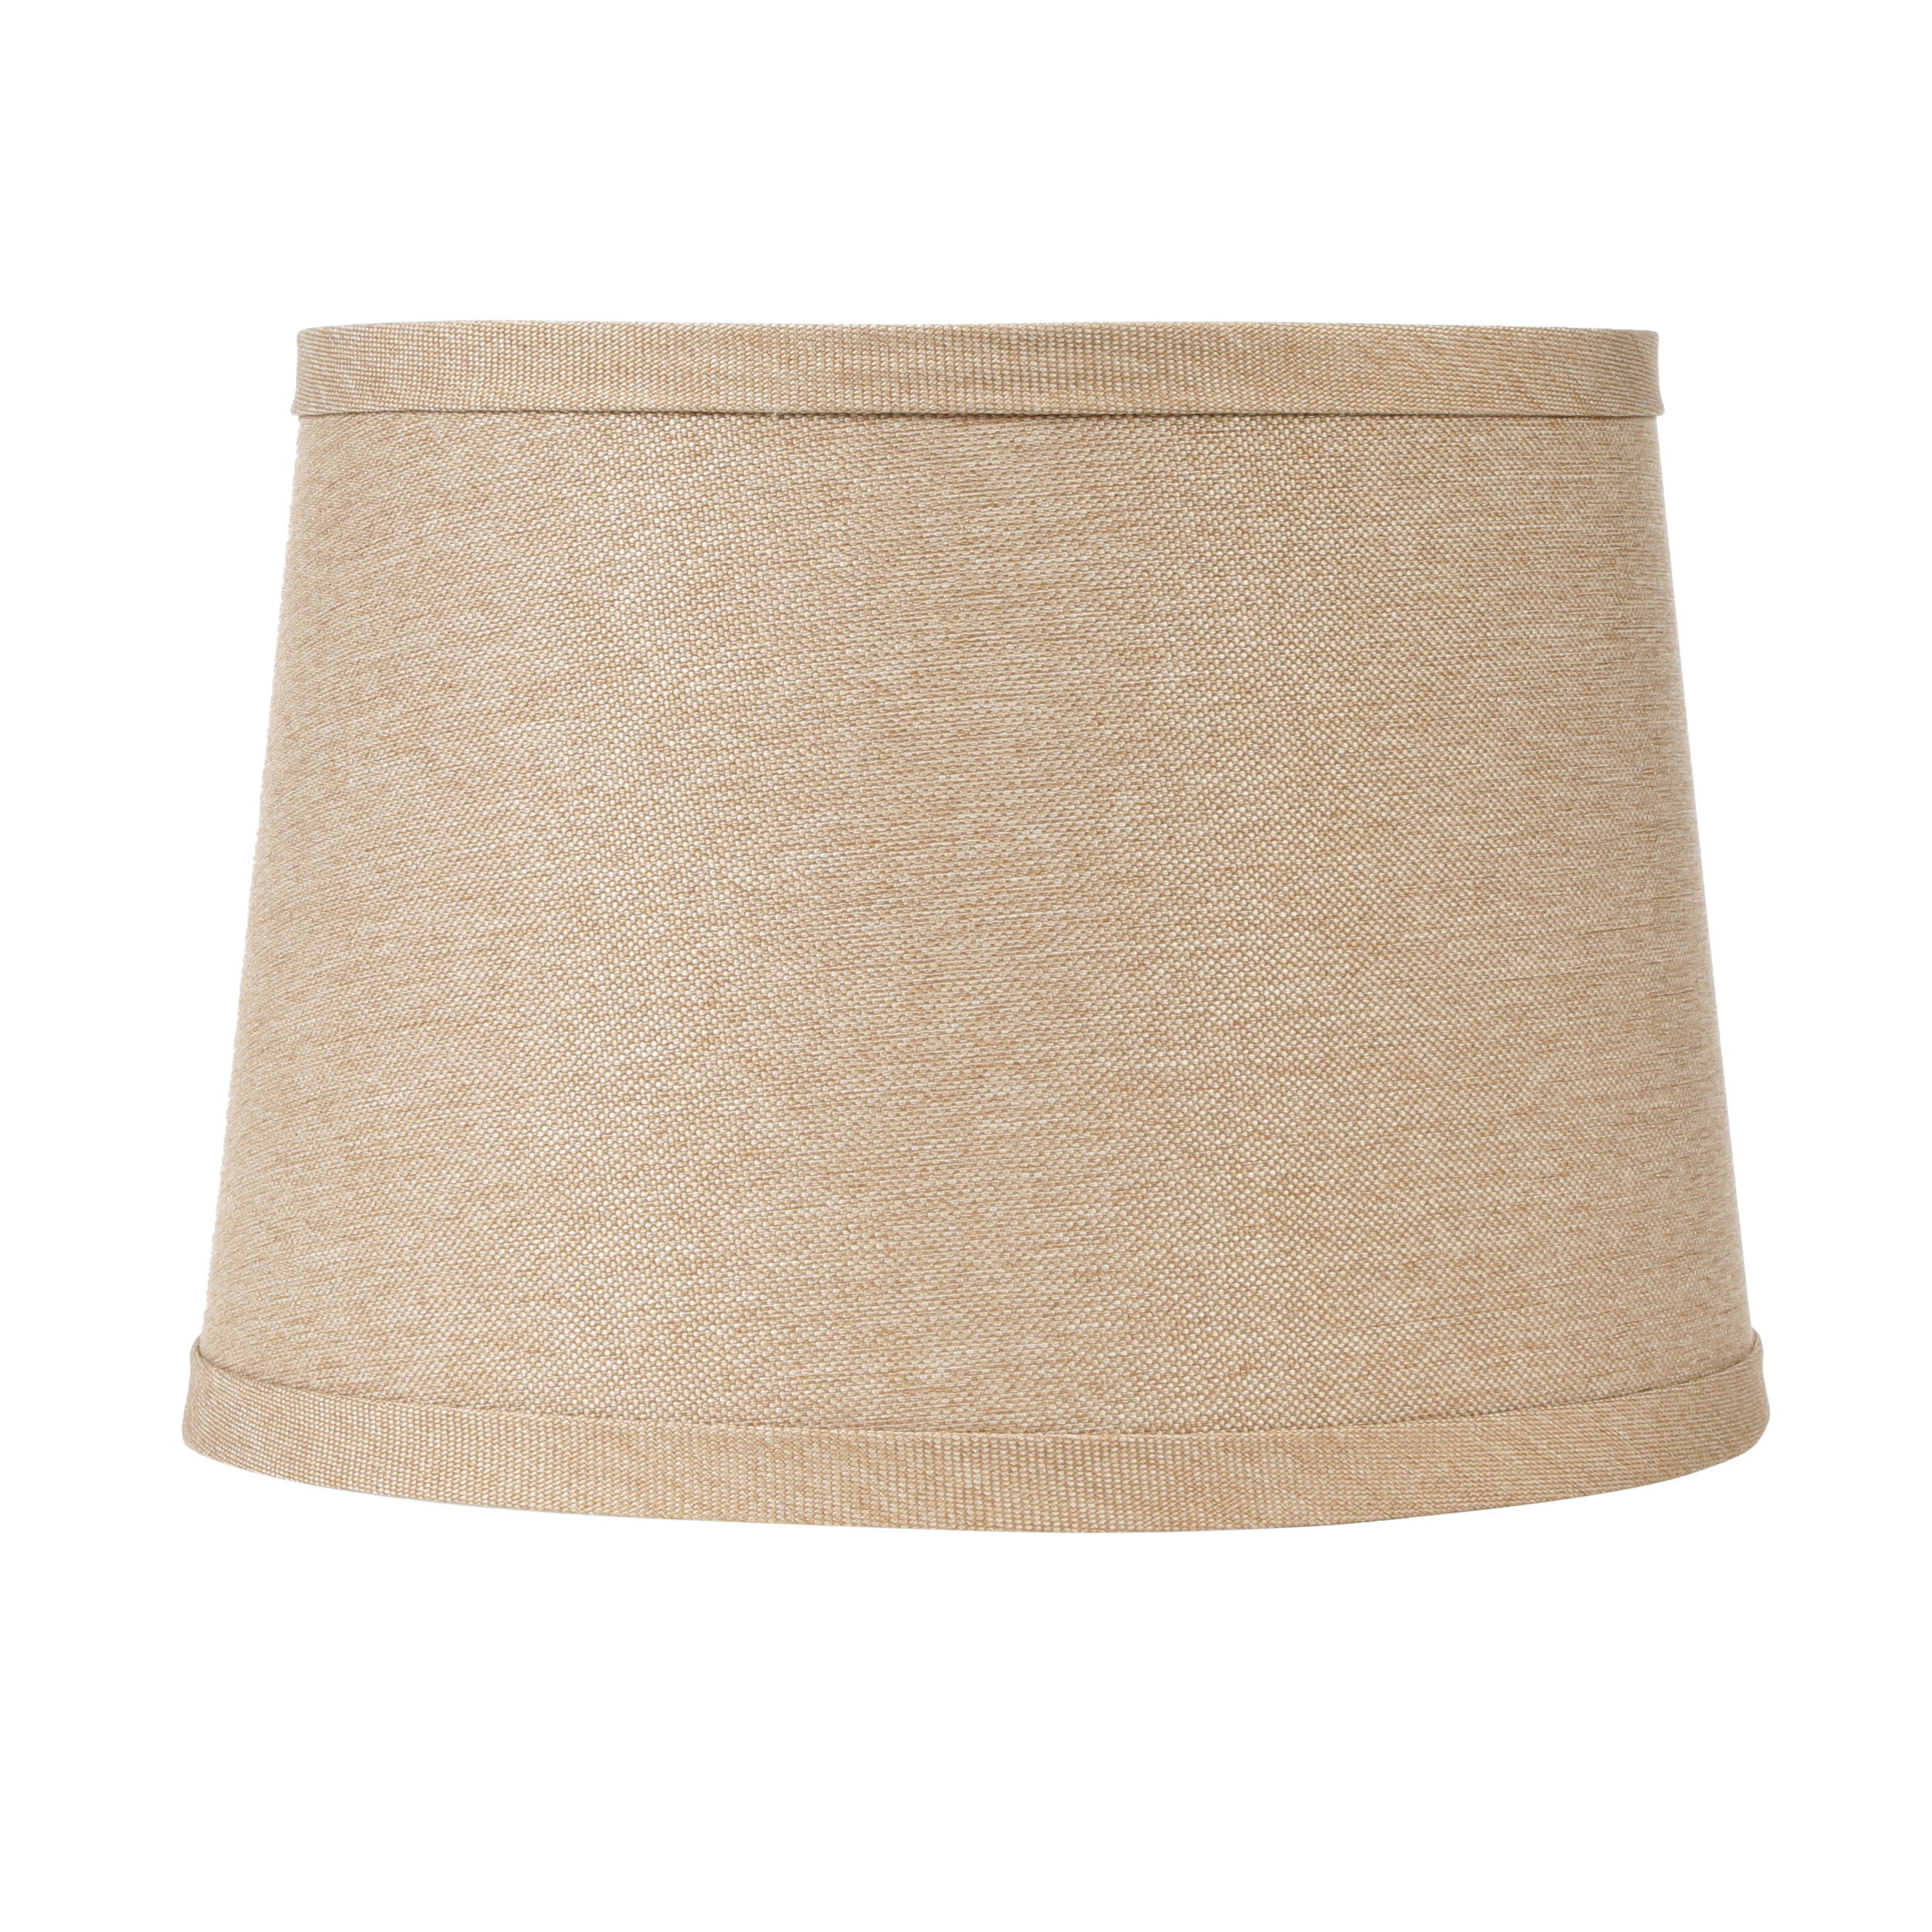 Superb Better Homes And Gardens Beige Textured Table Lamp Shade